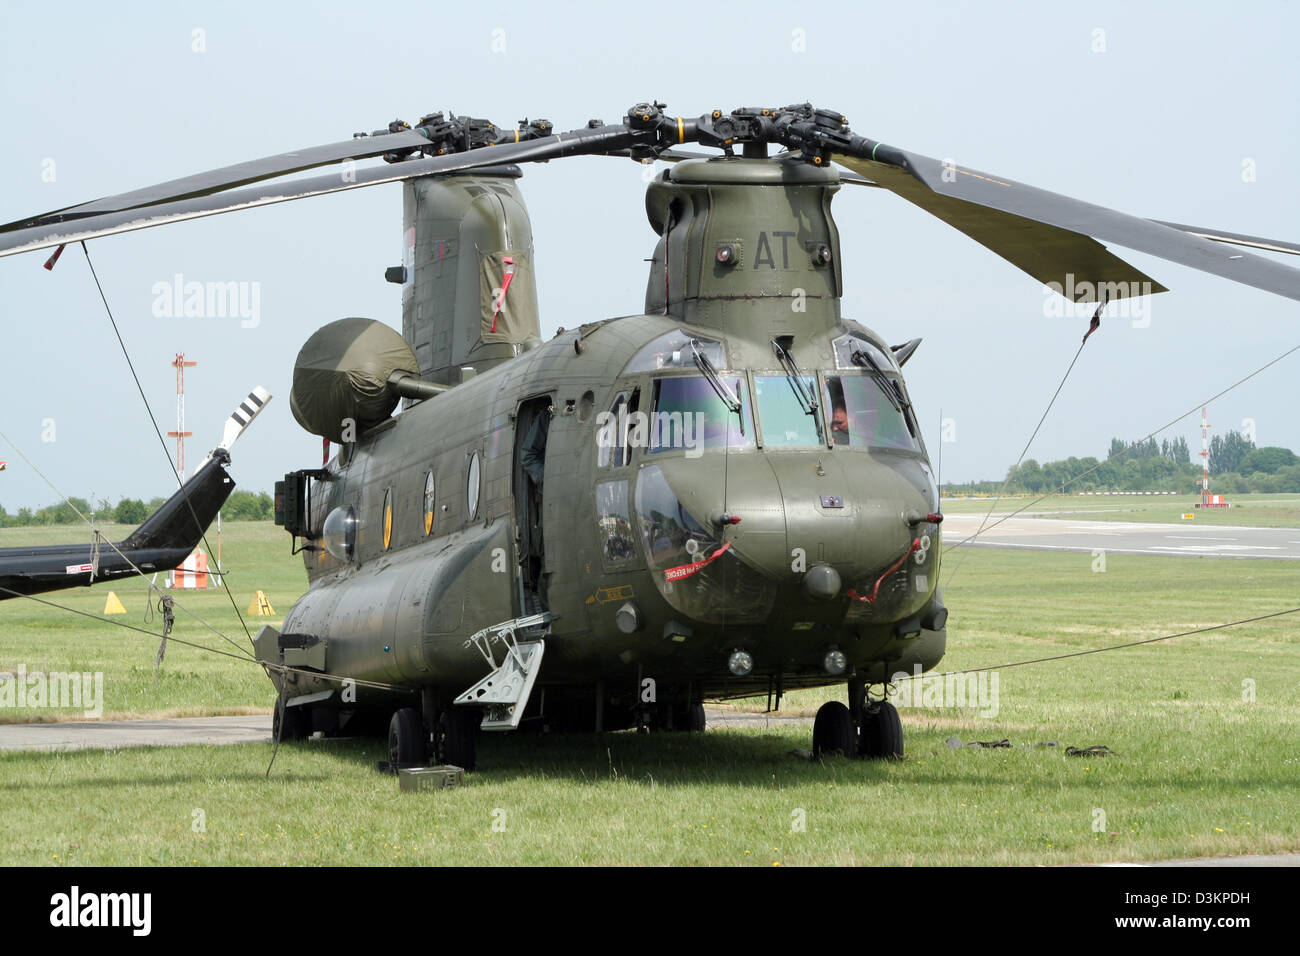 Royal Air Force CH/47 Chinook transport helicopter - Stock Image